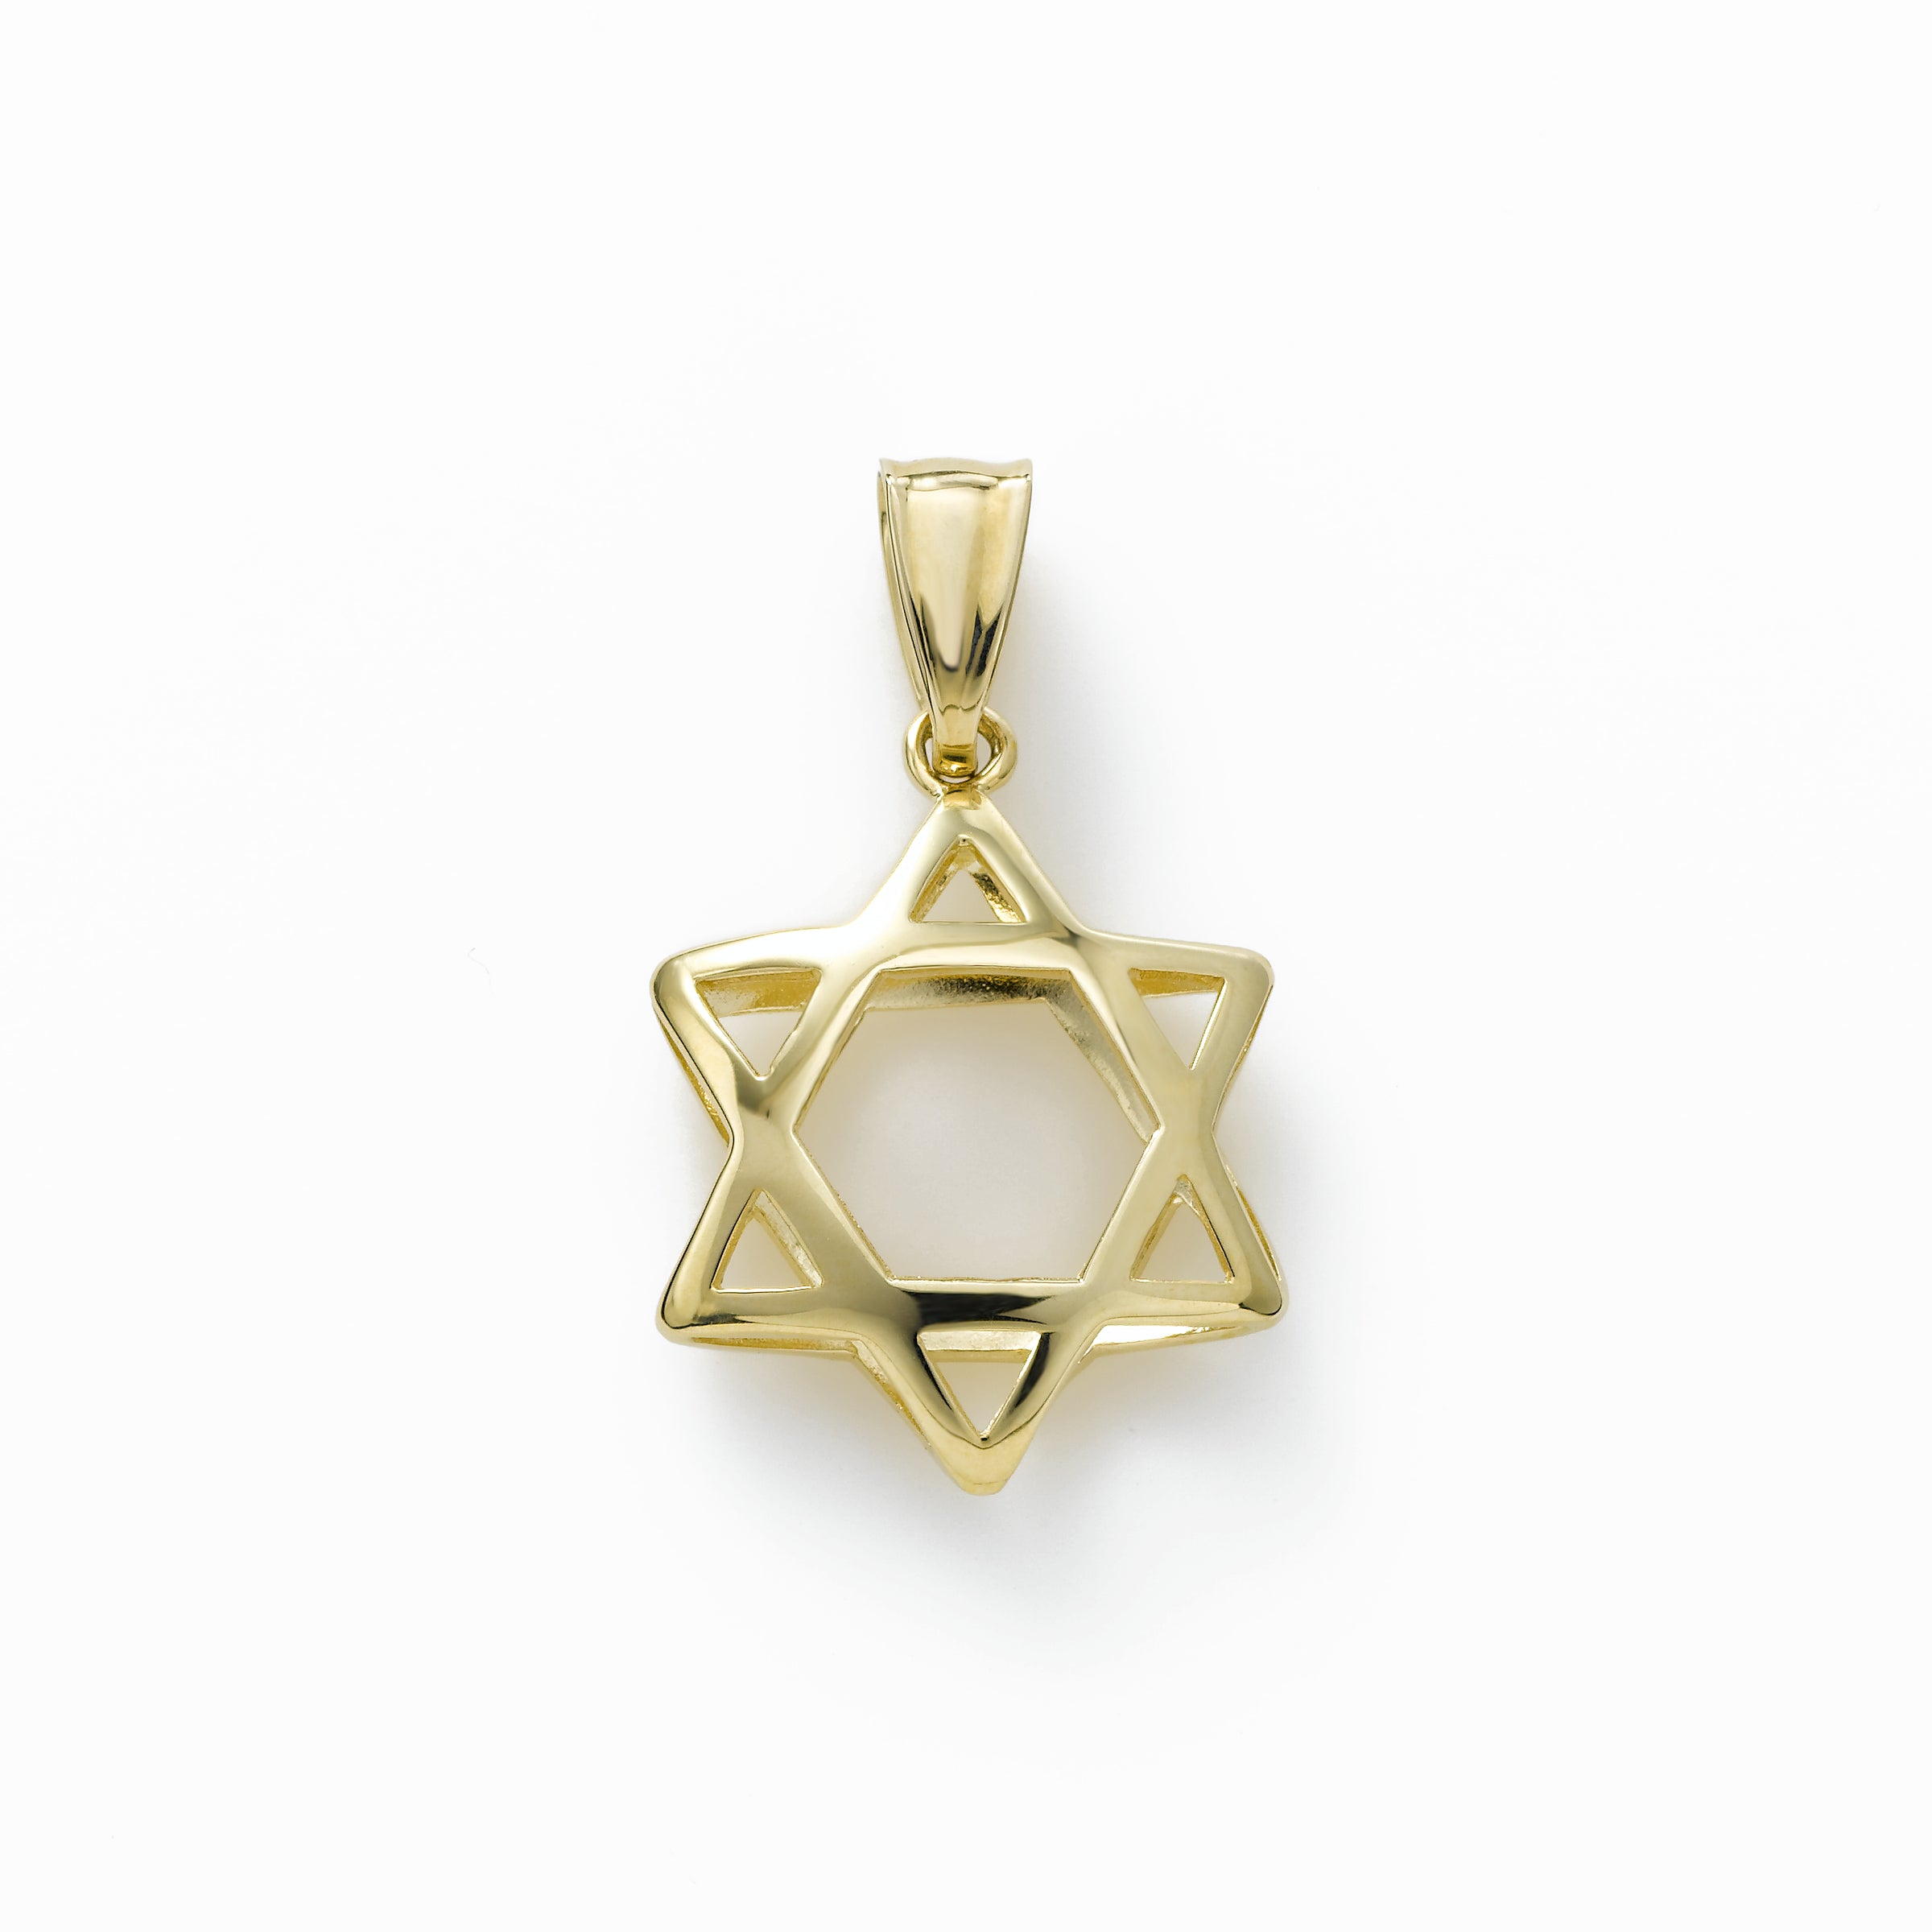 Star of David Silhouette Charm, 14K Yellow Gold